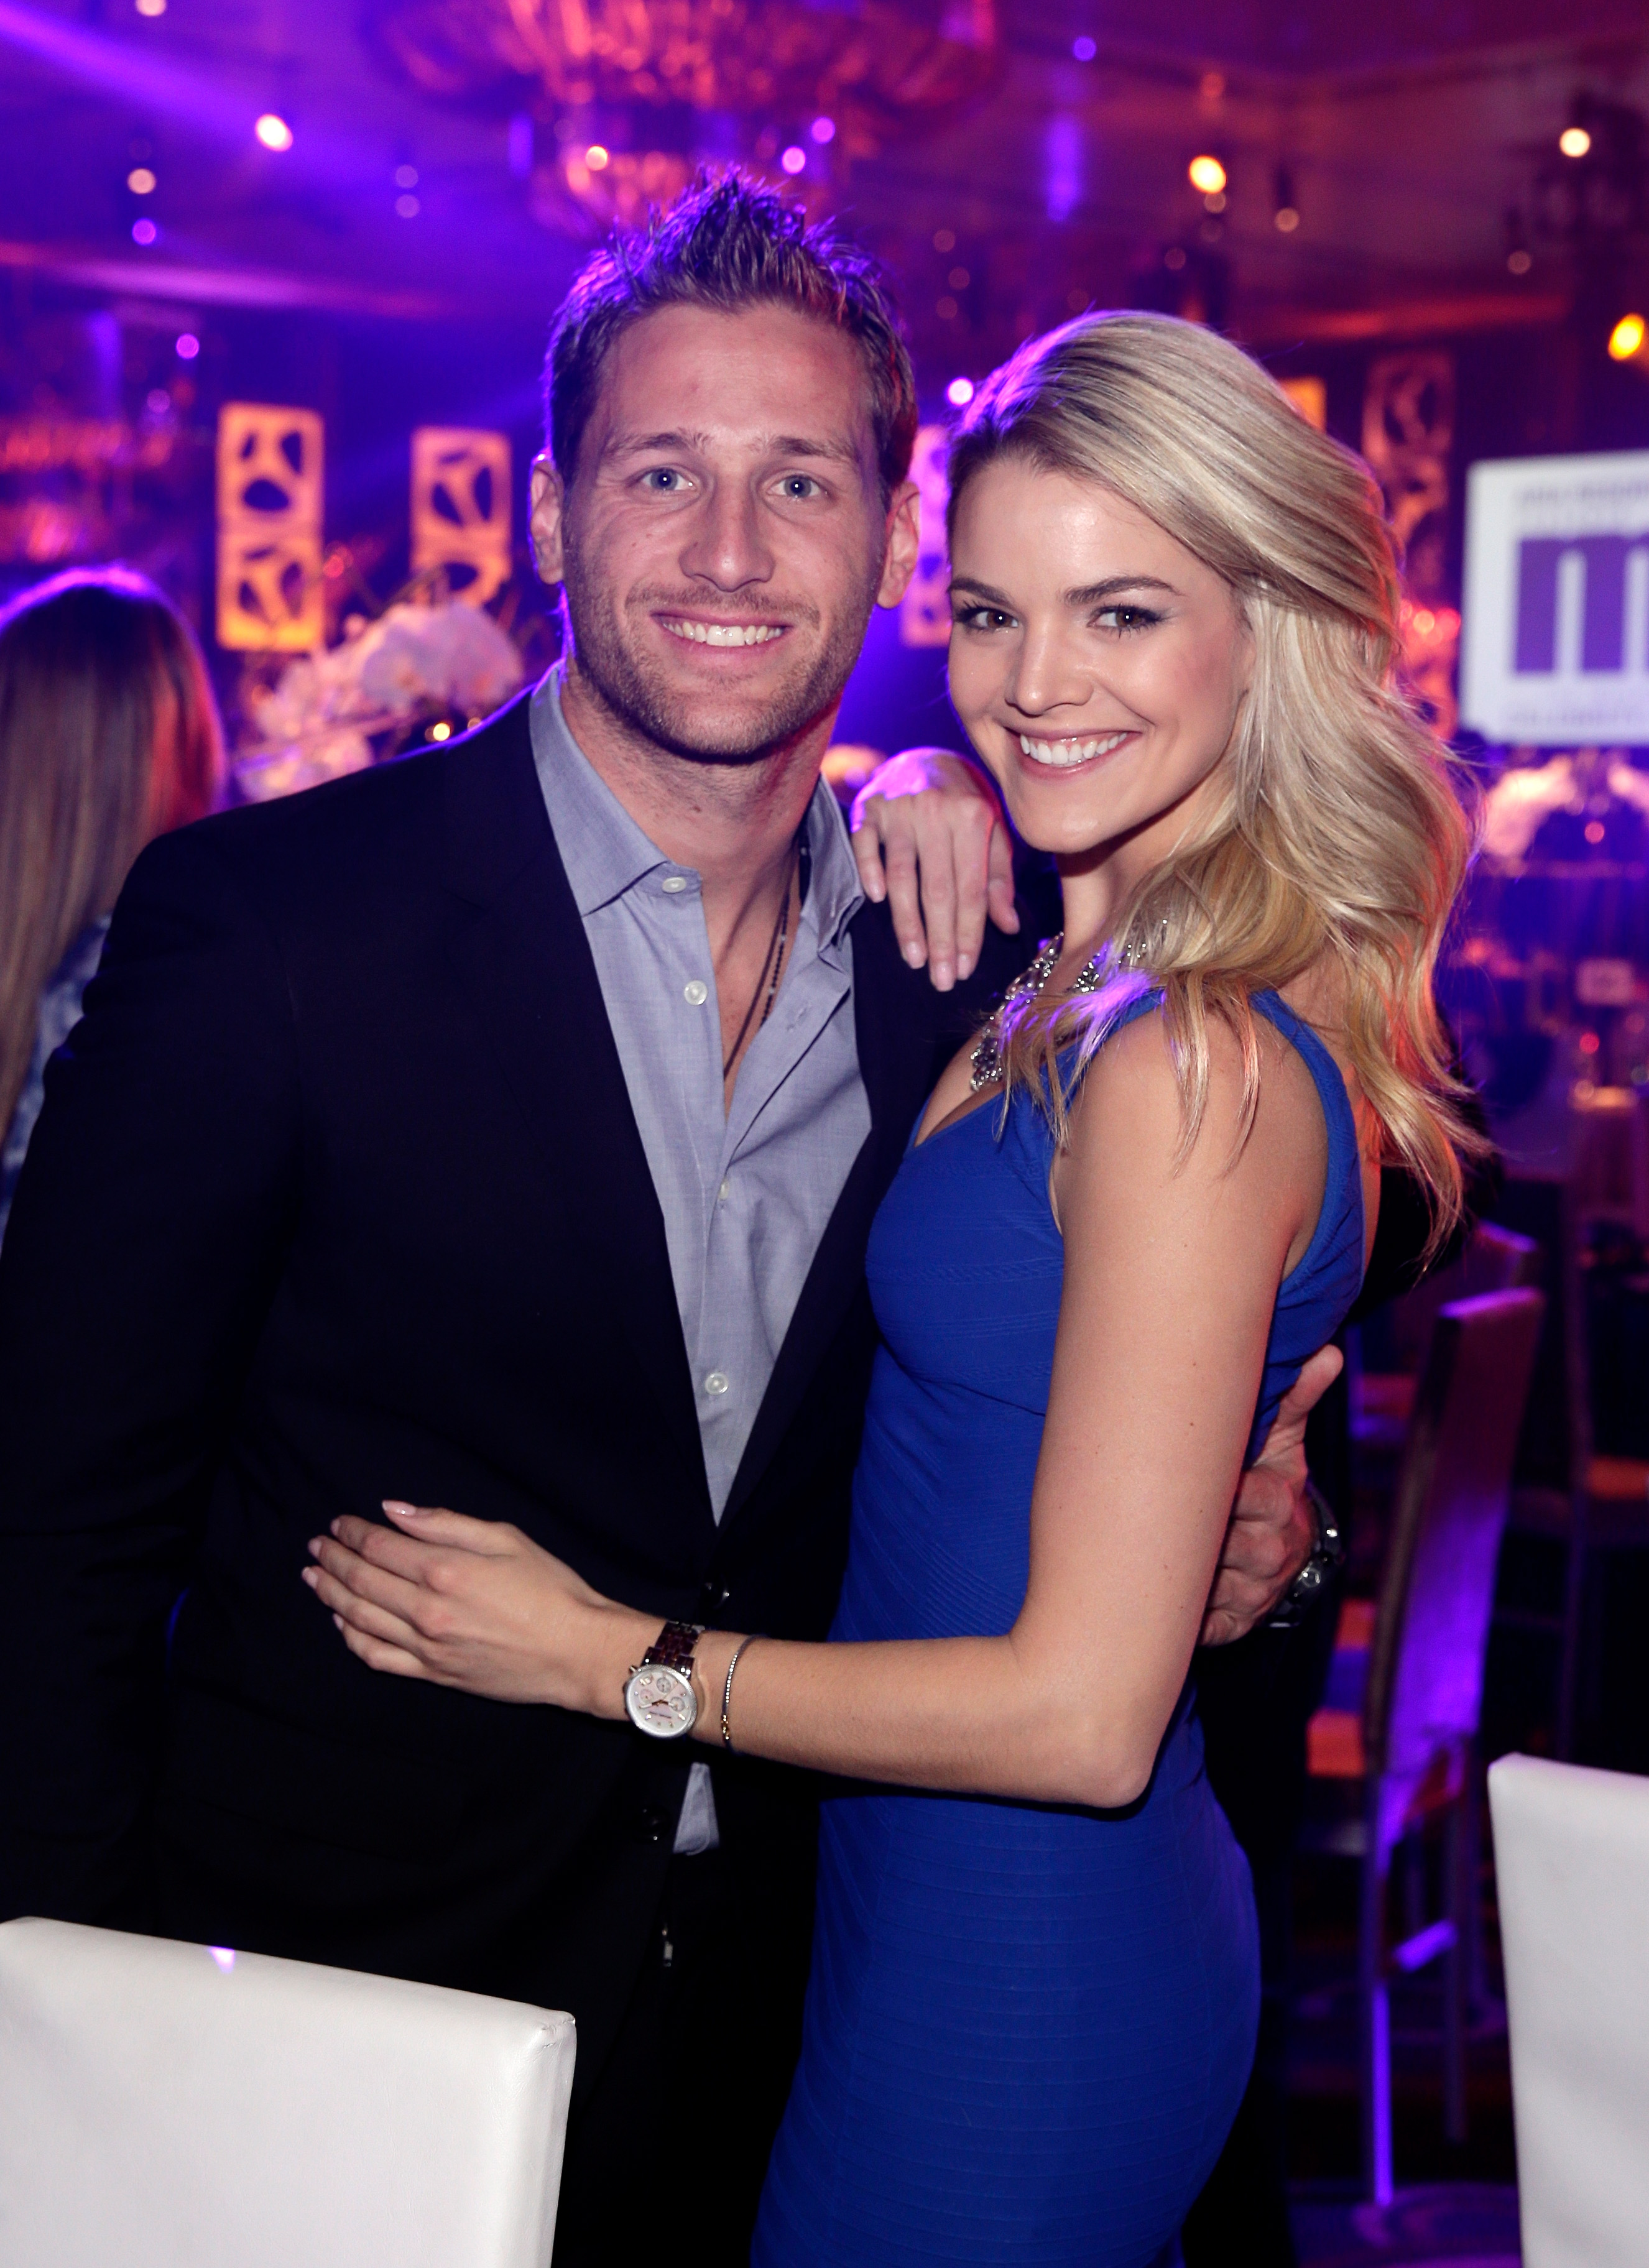 Who is juan pablo galavis dating now